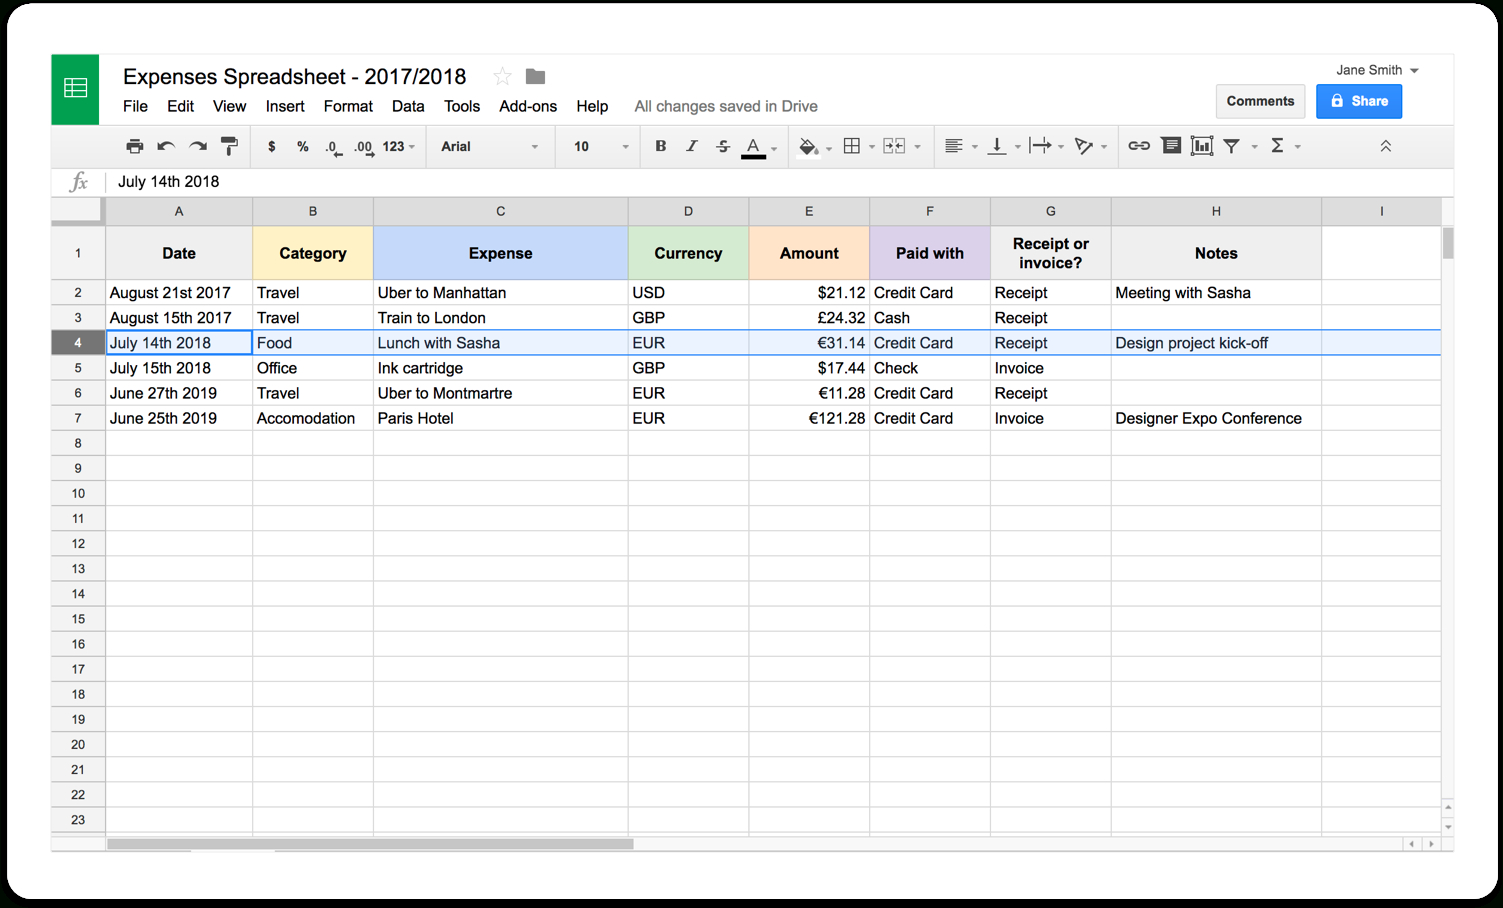 Cost Of Doing Business Spreadsheet Intended For Selfemployed Expenses Spreadsheet